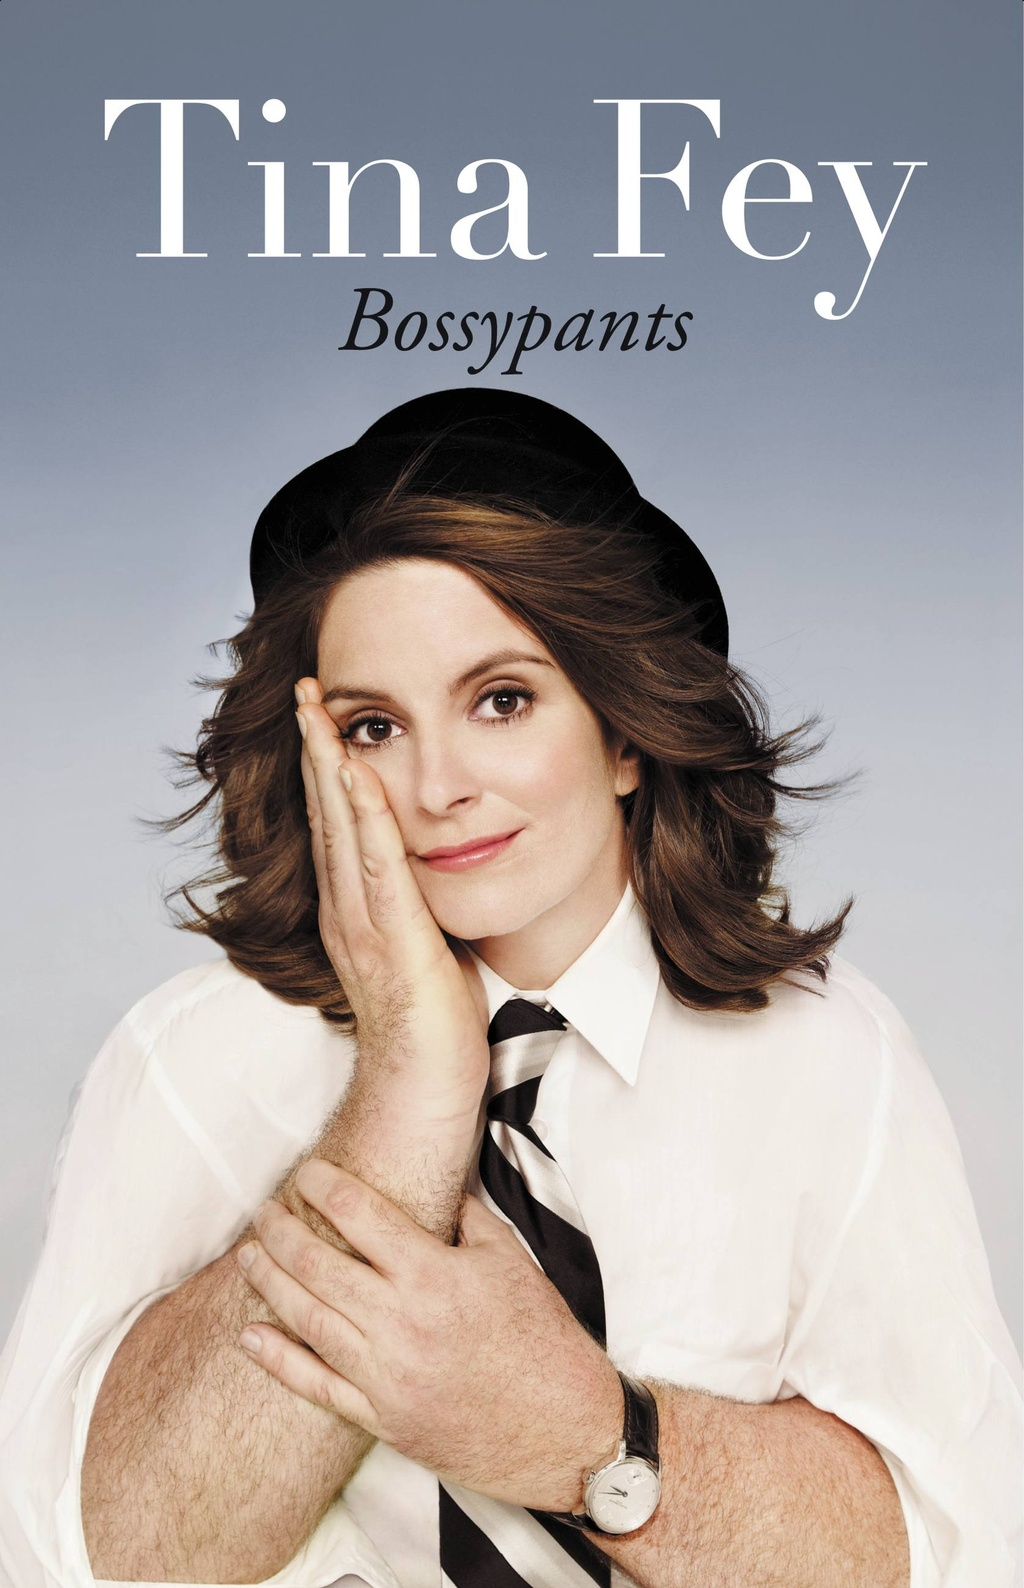 Female Biographies - Bossypants by Tina Fey | Dutchie Love